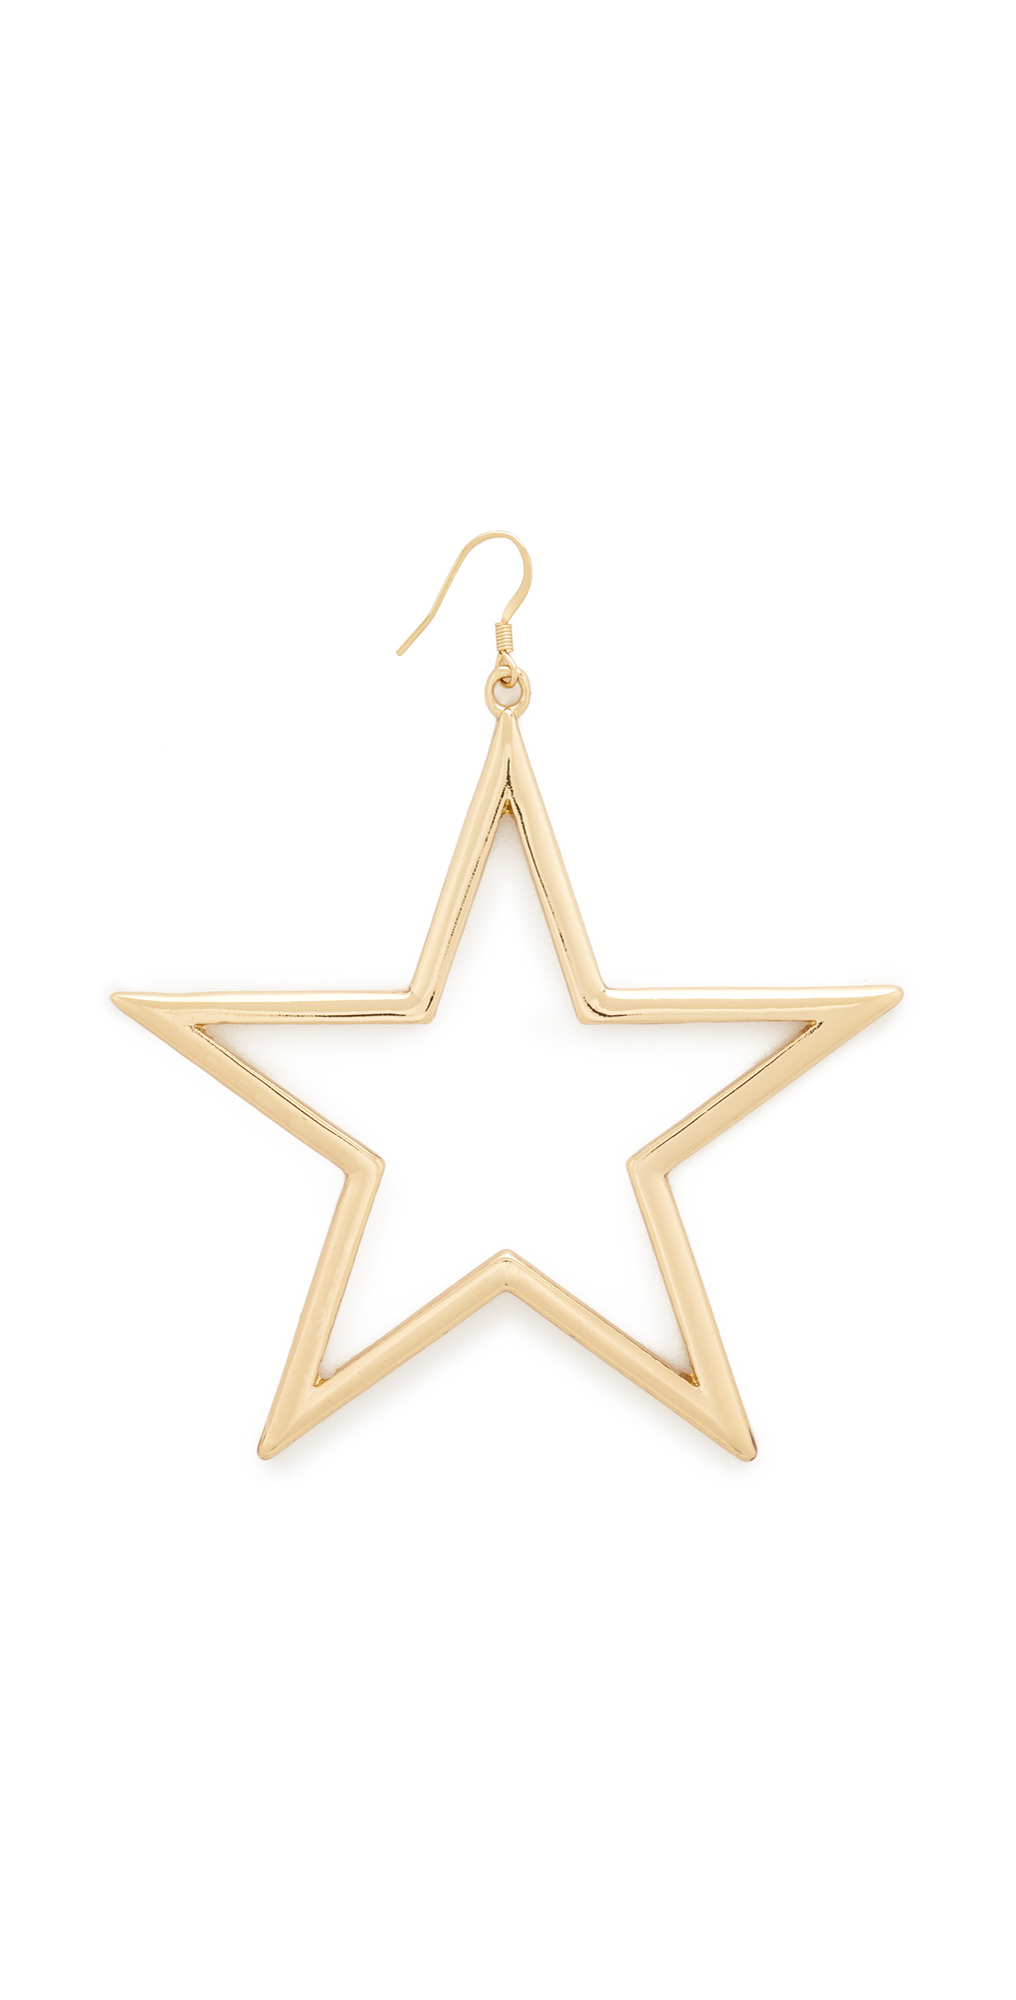 Single Open Star Fishhook Earring Kenneth Jay Lane